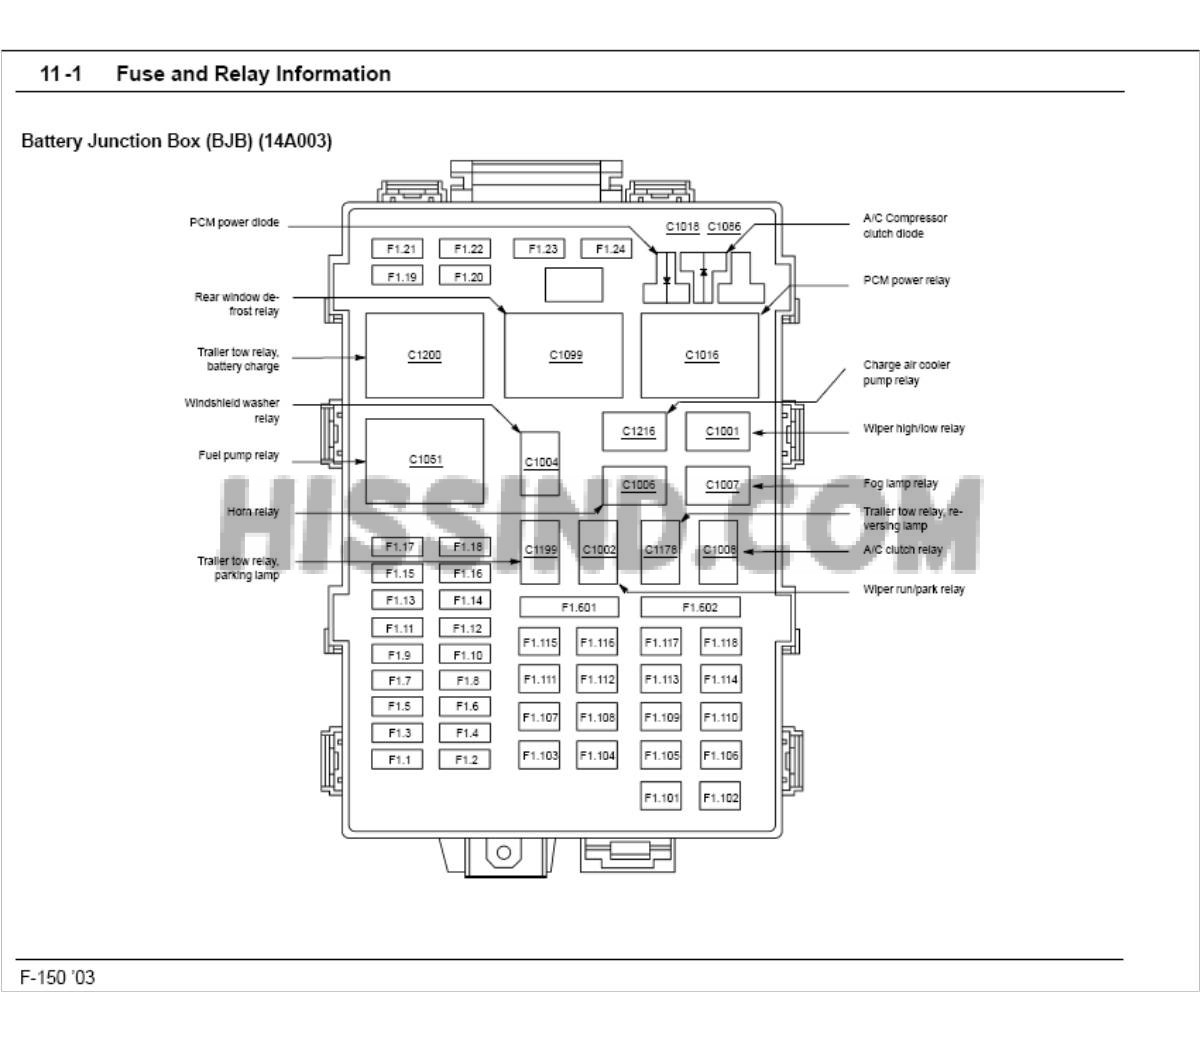 hight resolution of 2000 f150 fuse box diagram 2000 ford f150 fuse box diagram engine bay 2003 ford 5 4